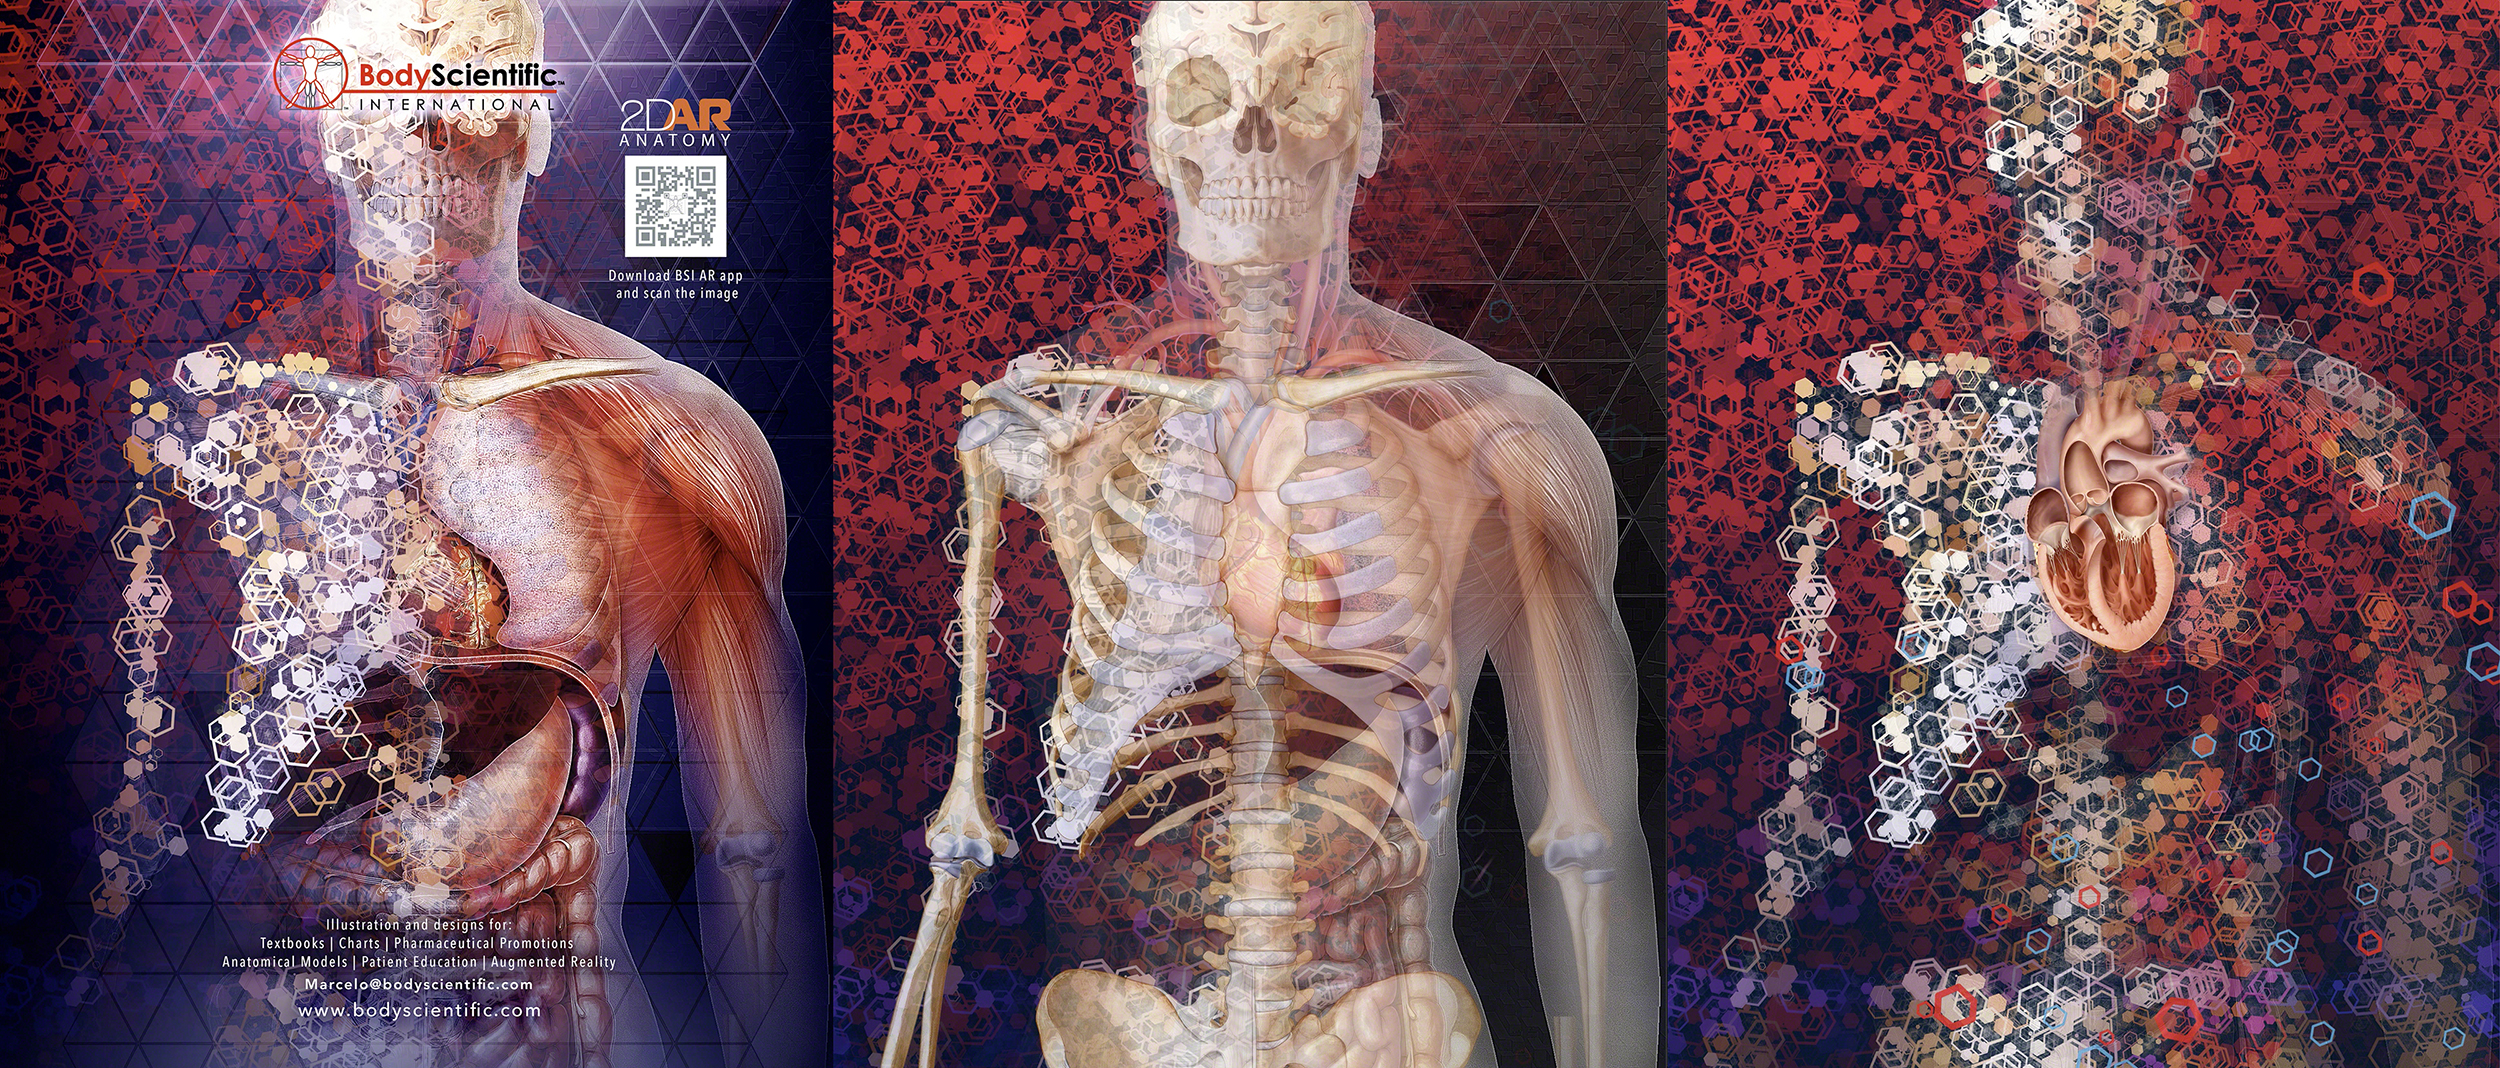 animated art illustration of human anatomy